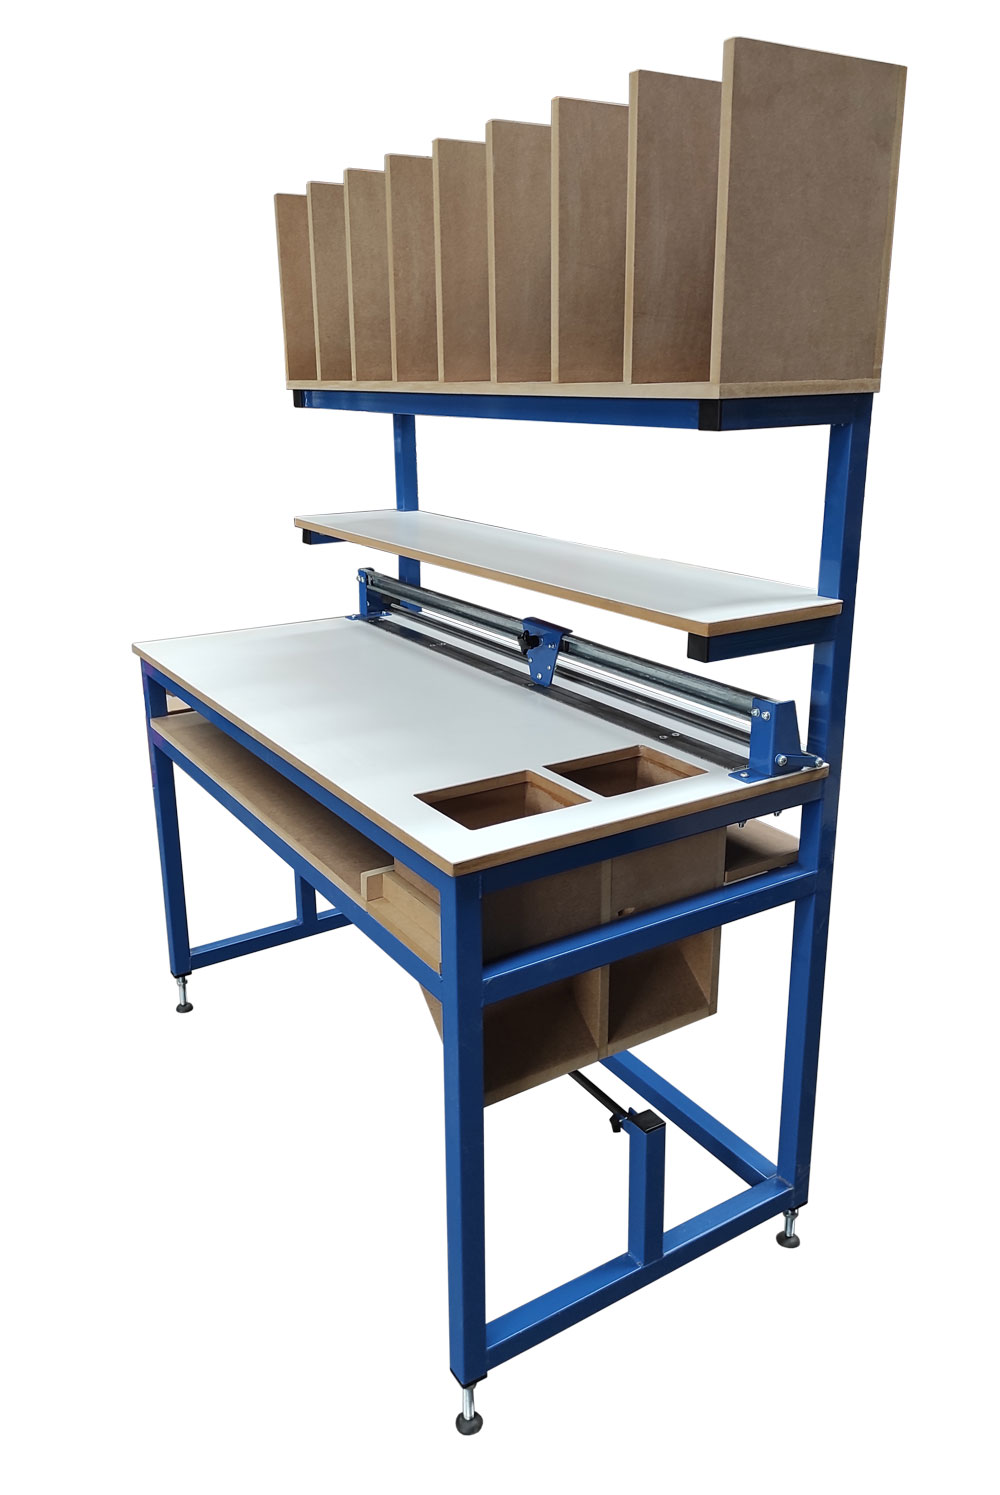 Packing bench with cutter & refuse chute